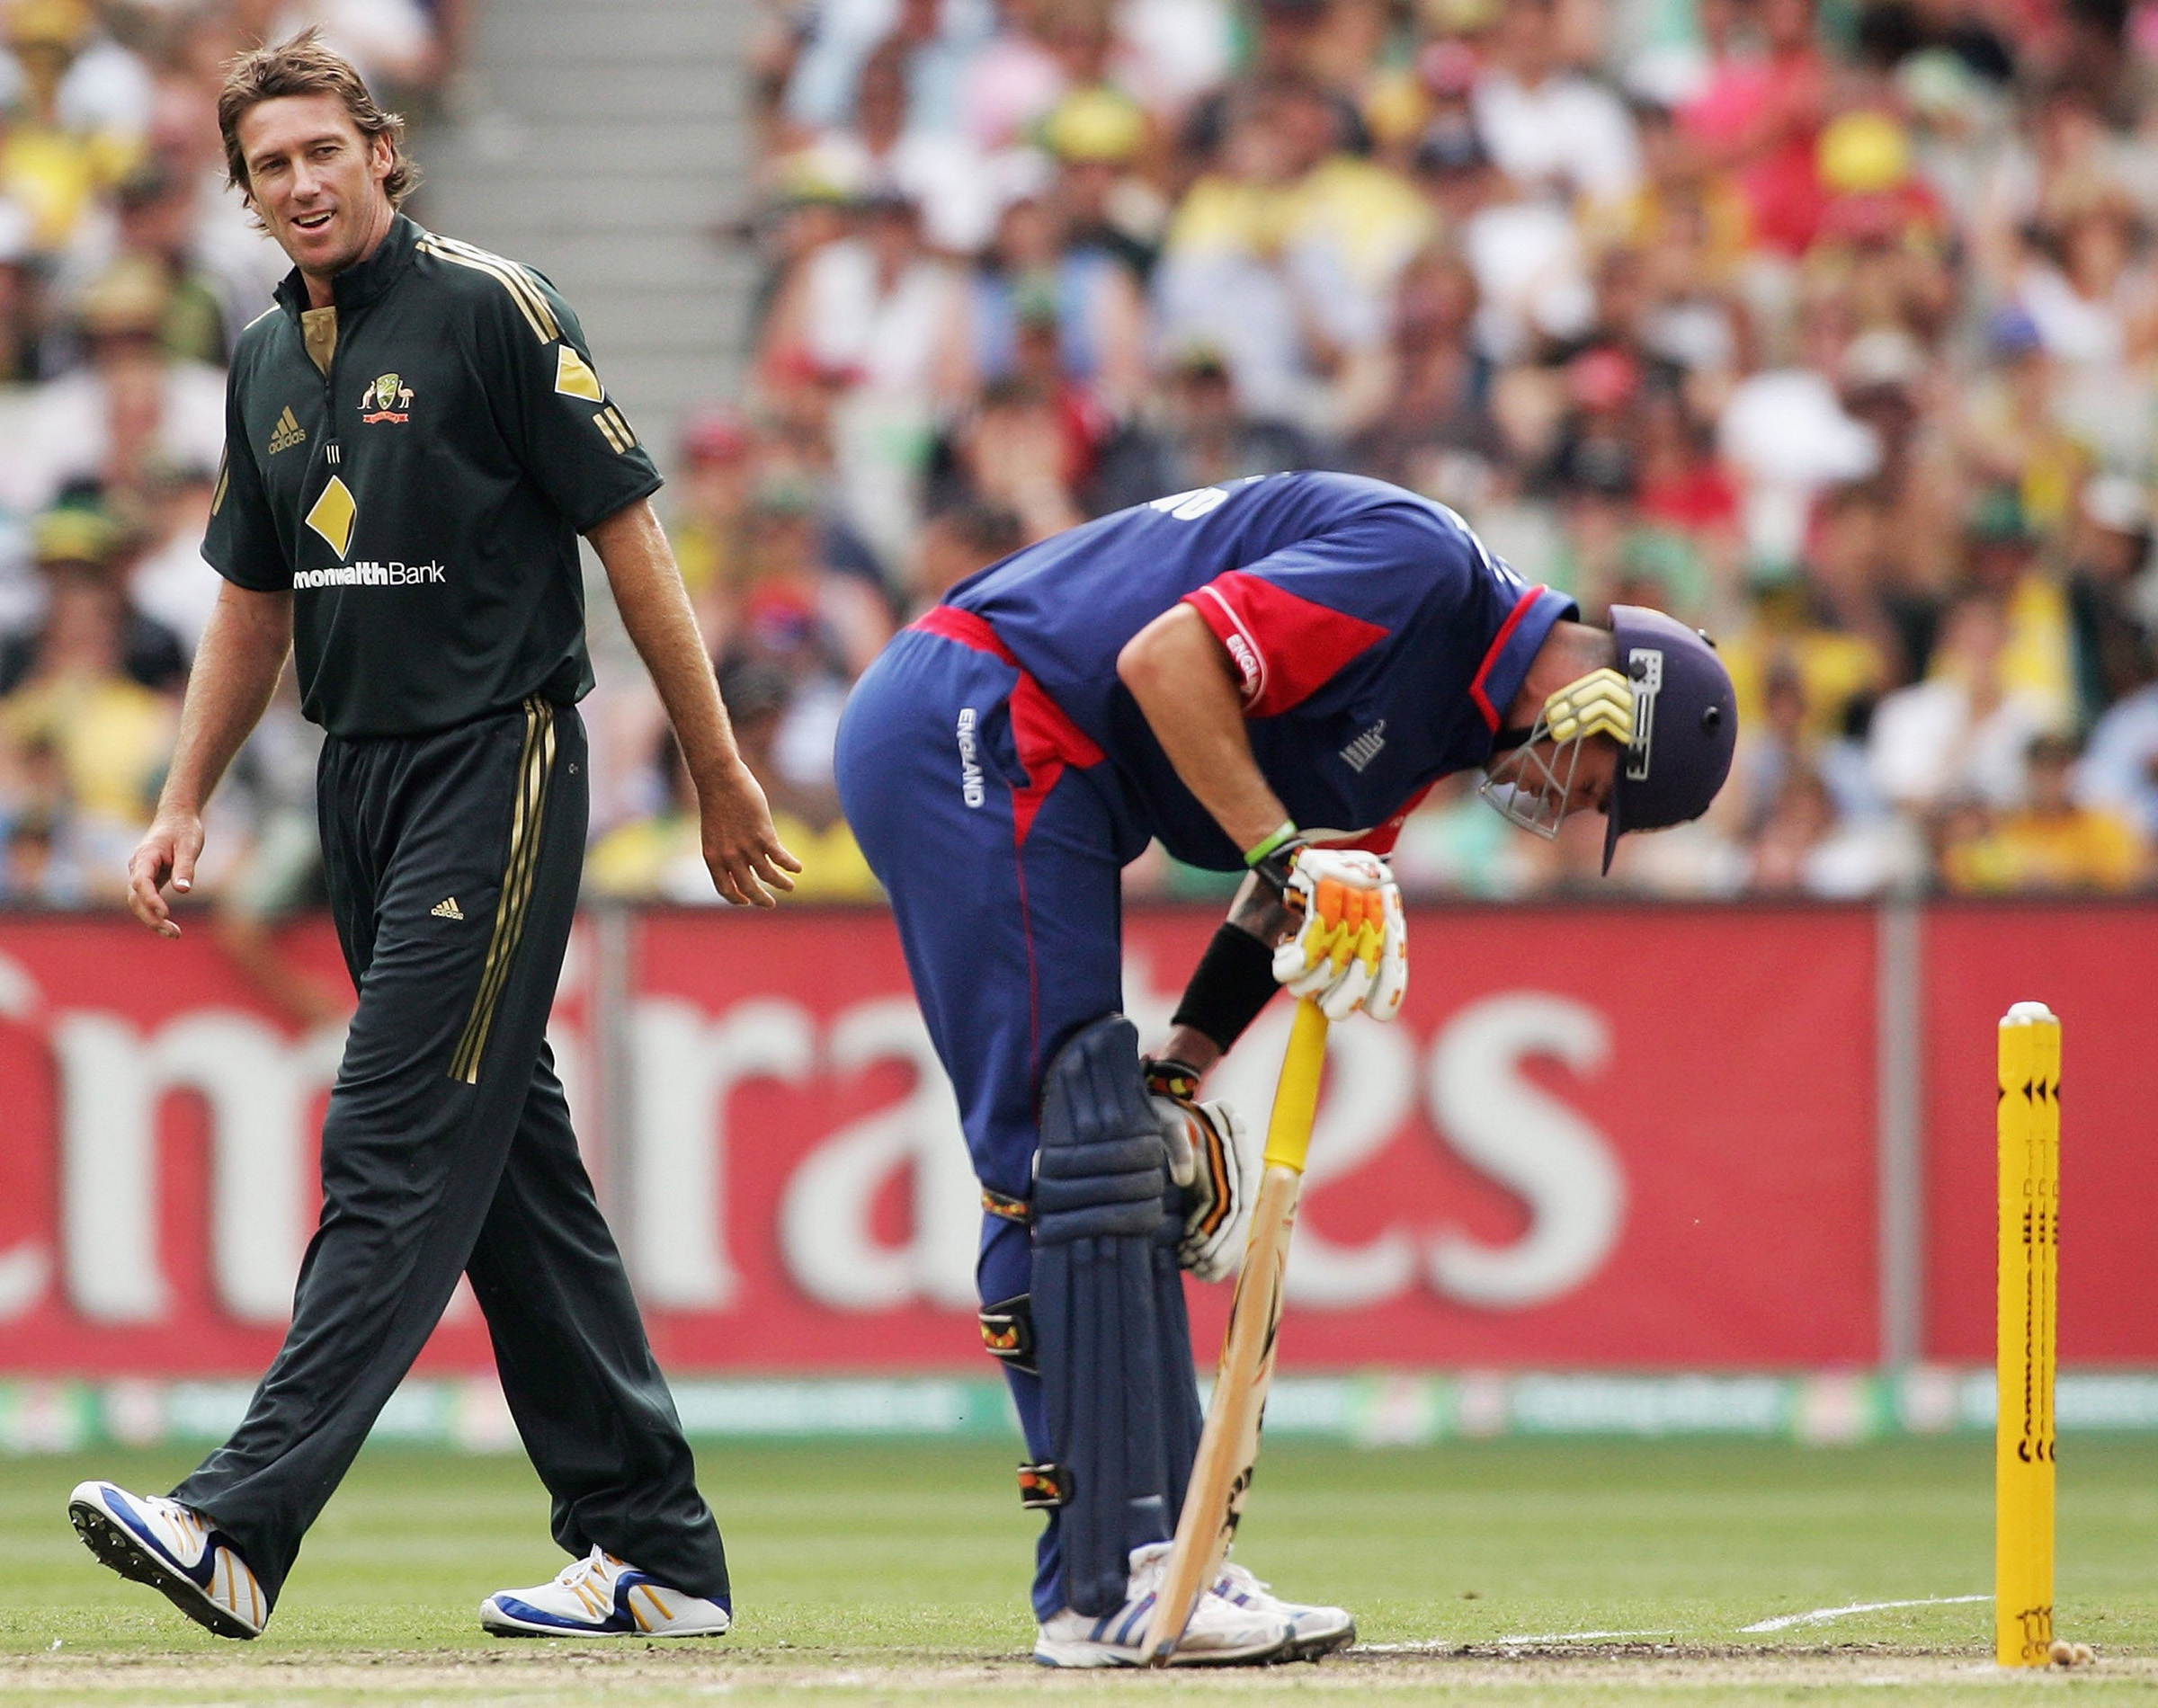 McGrath looks on as Pietersen doubles over in pain // Getty